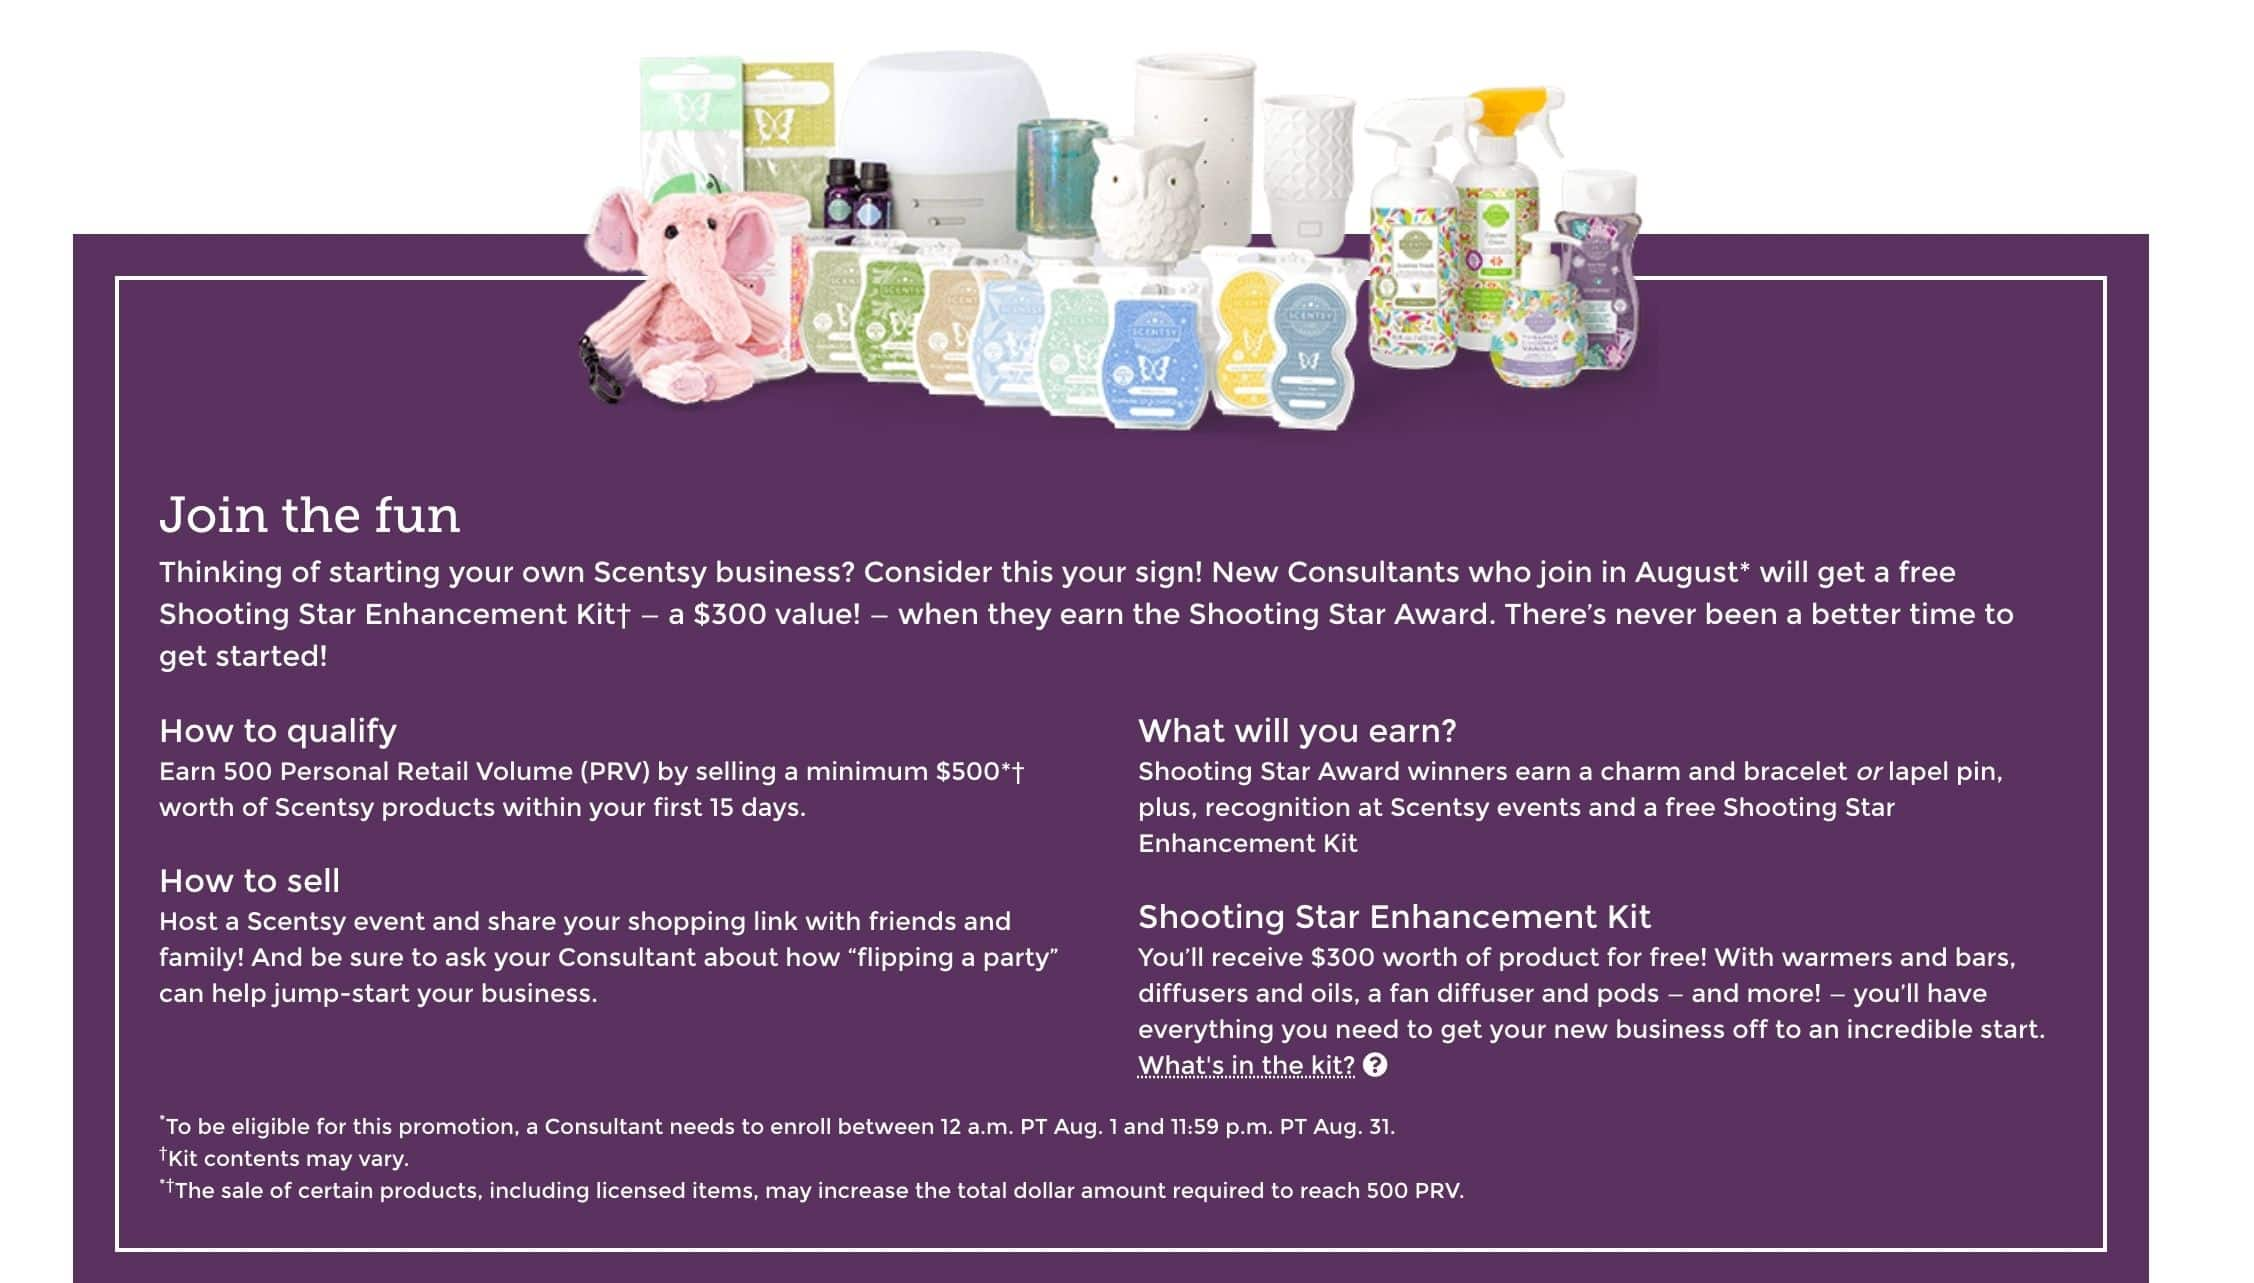 Scentsy Shooting Star Kit 2021 Fall Special